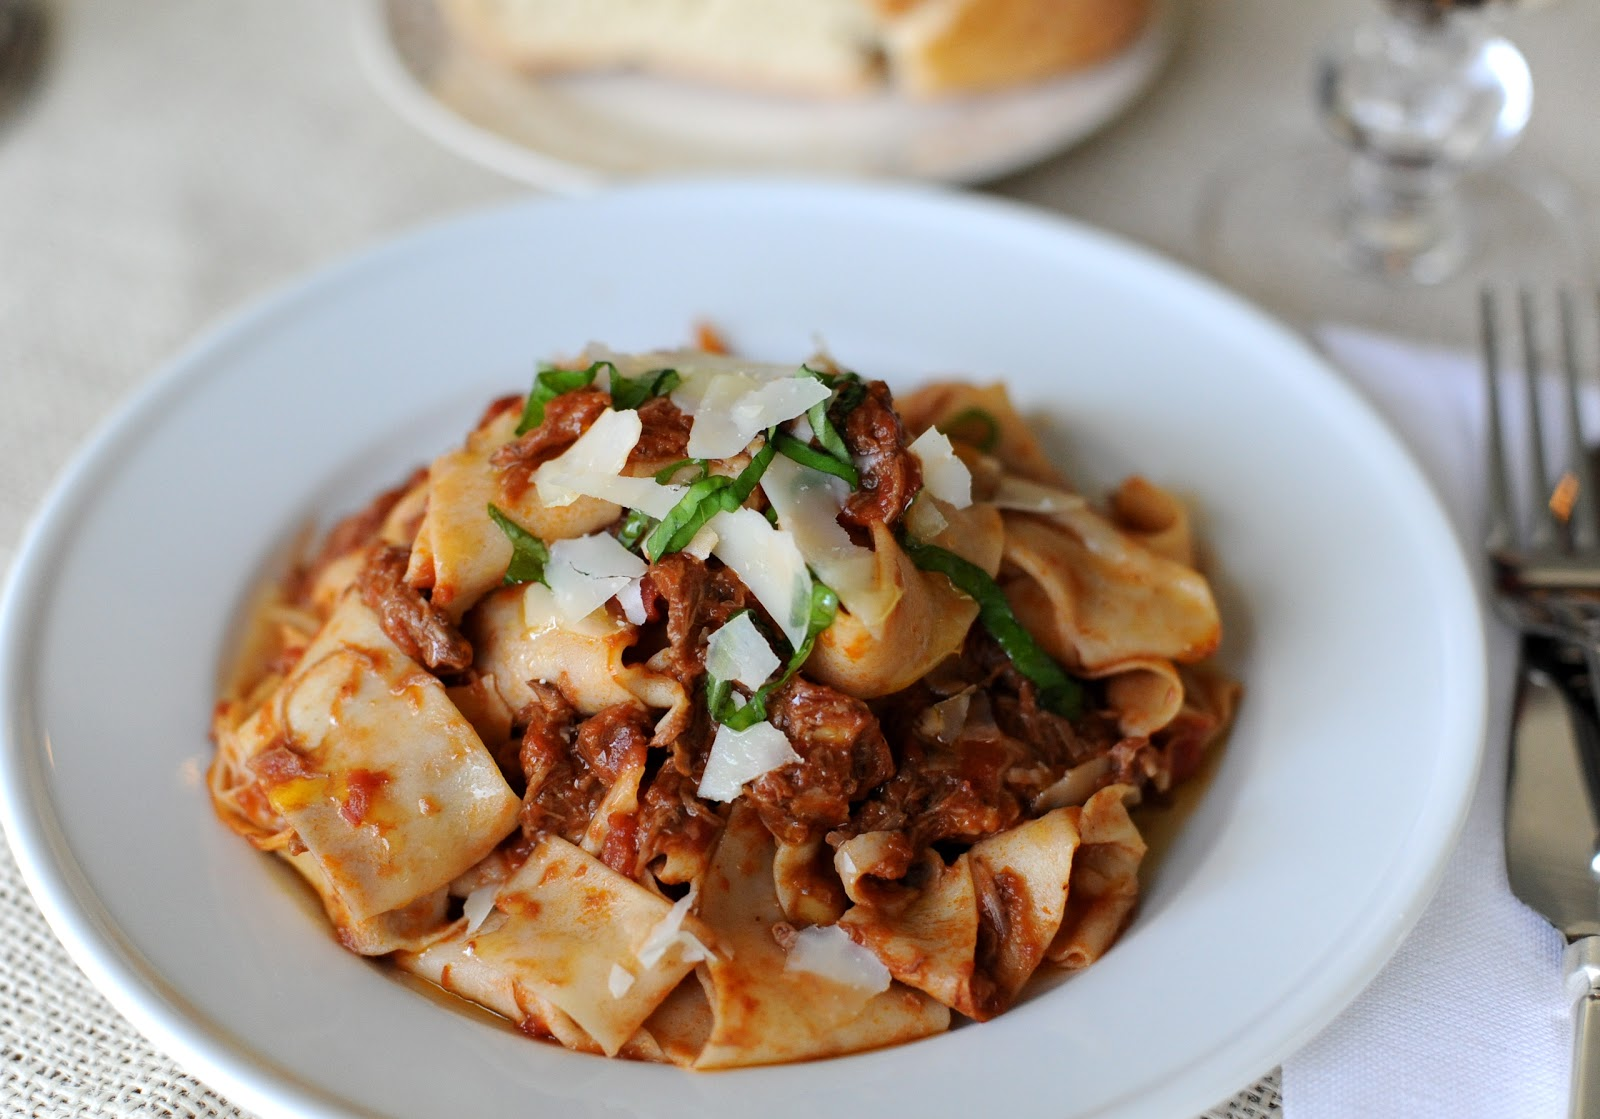 Braised Beef Ragu with Pappadelle